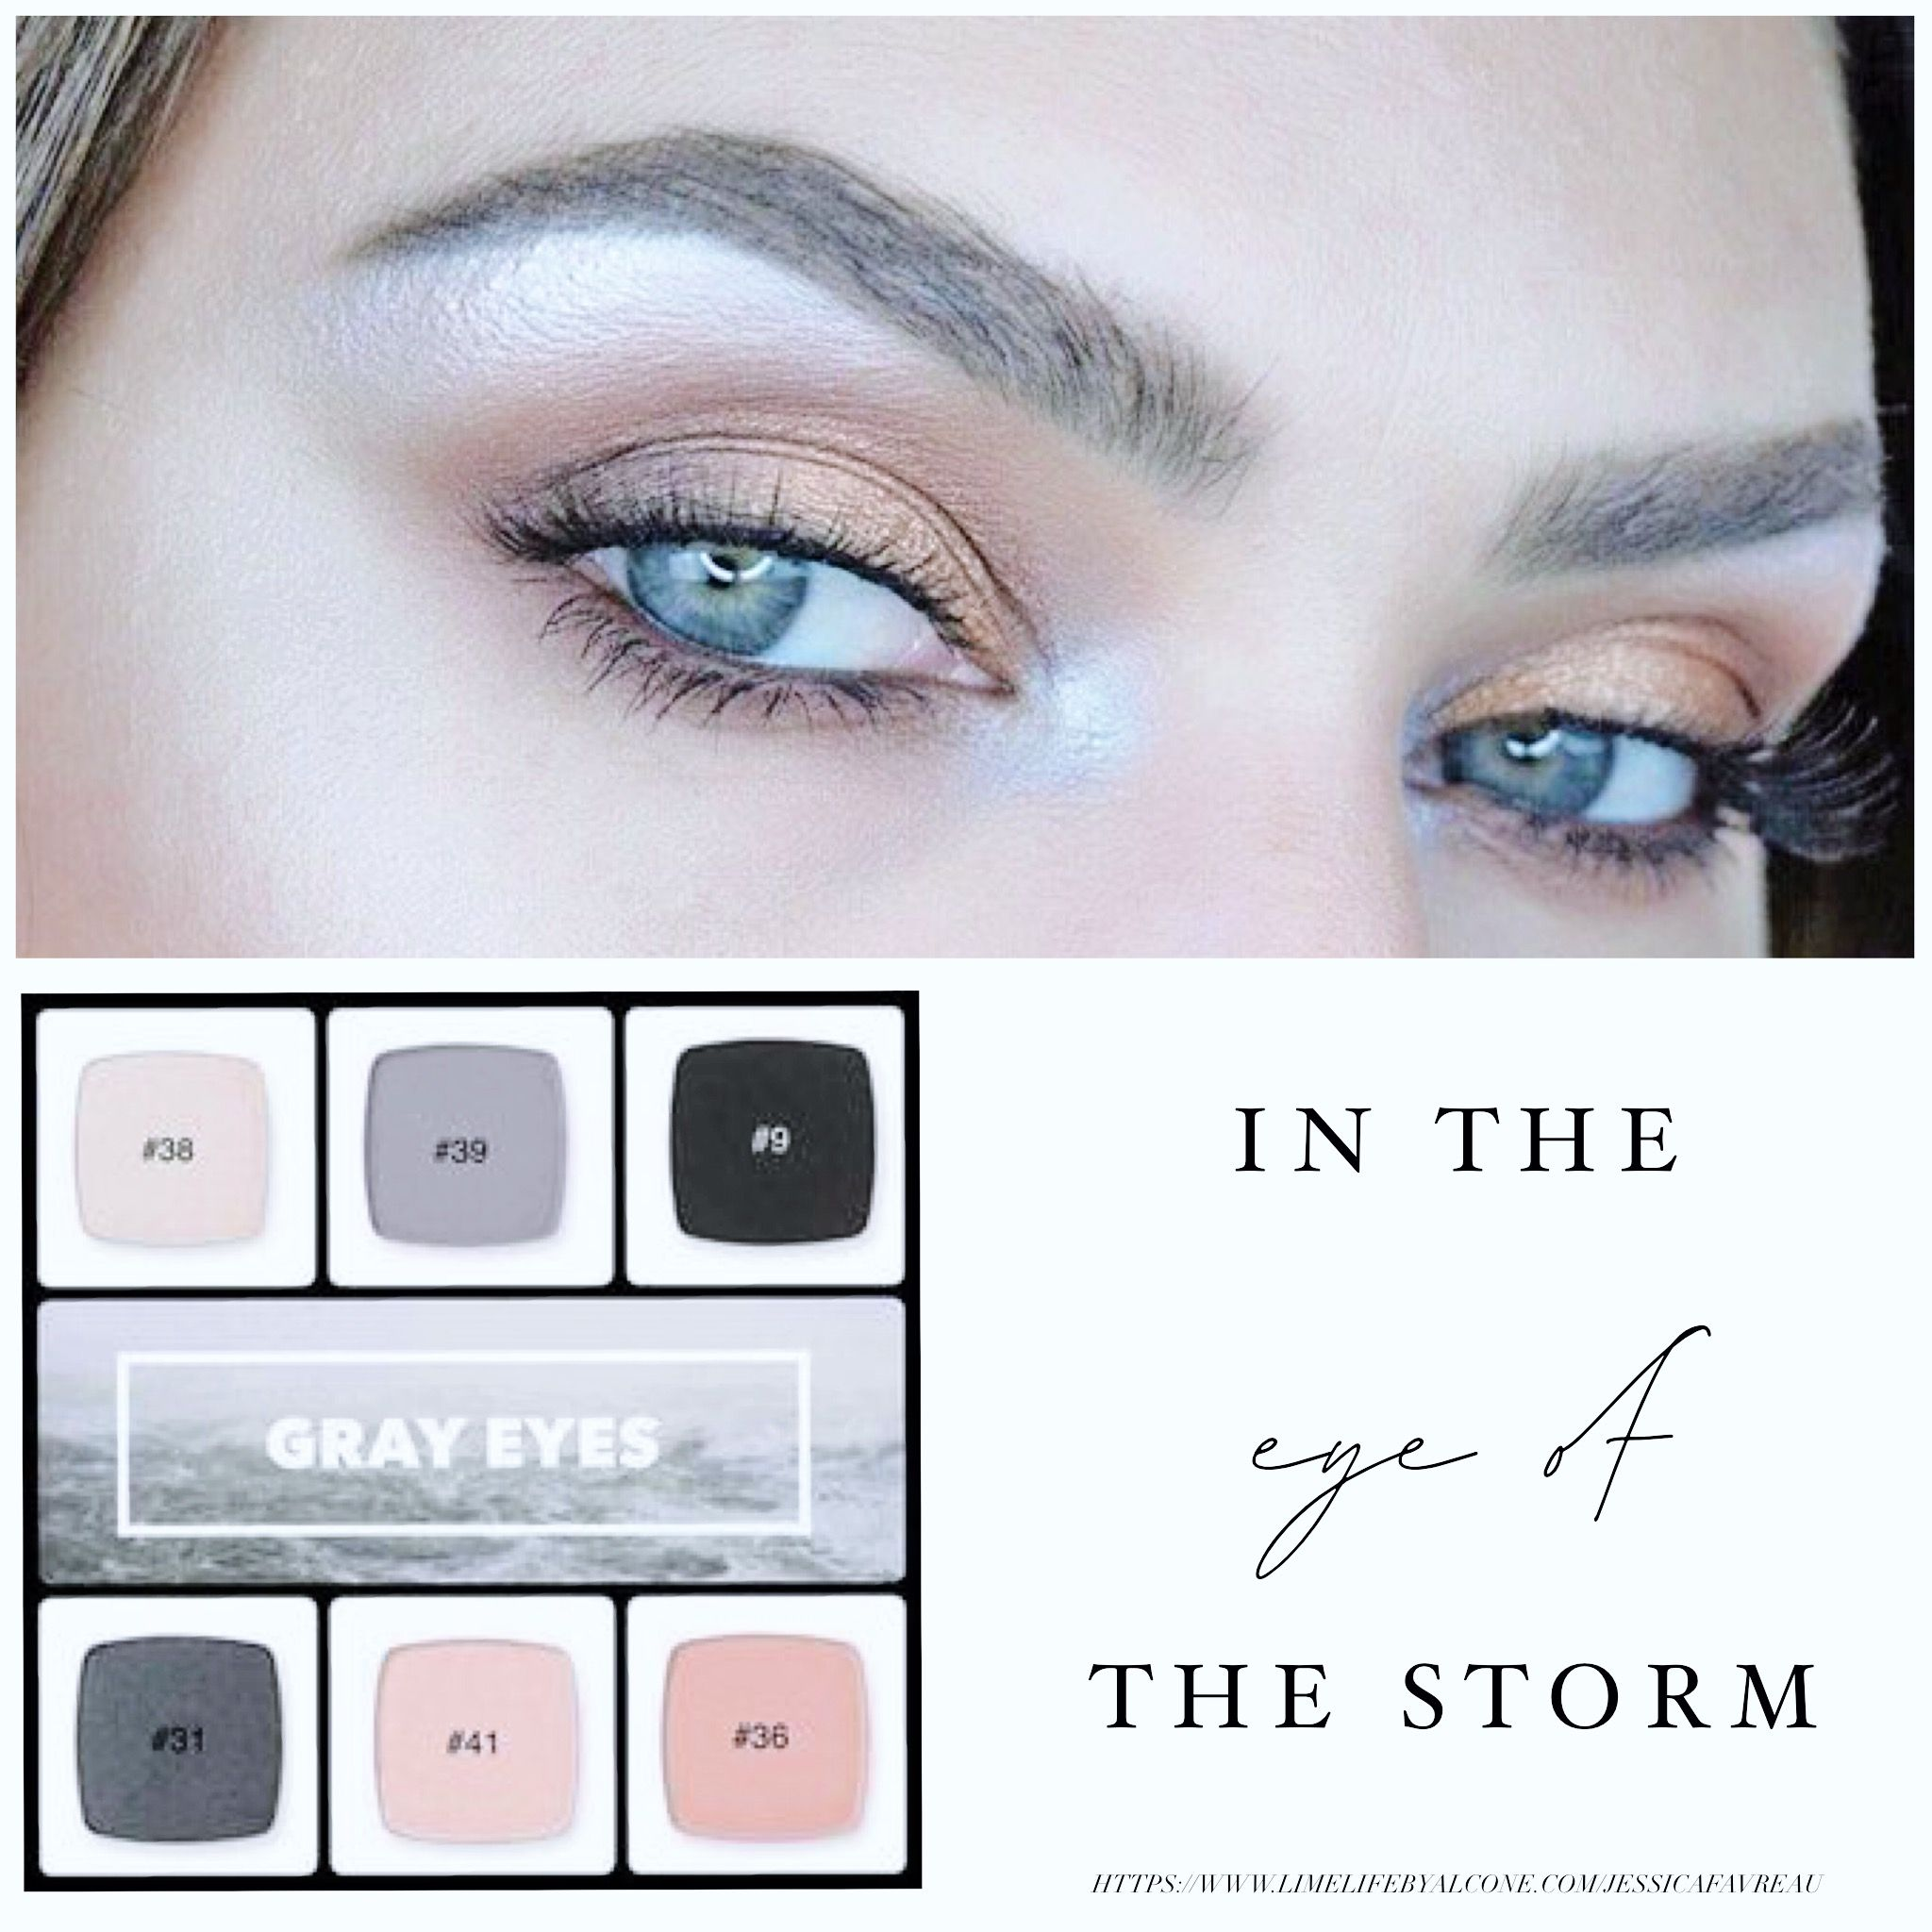 Customize your own palette for your eye color! Eyeshadow